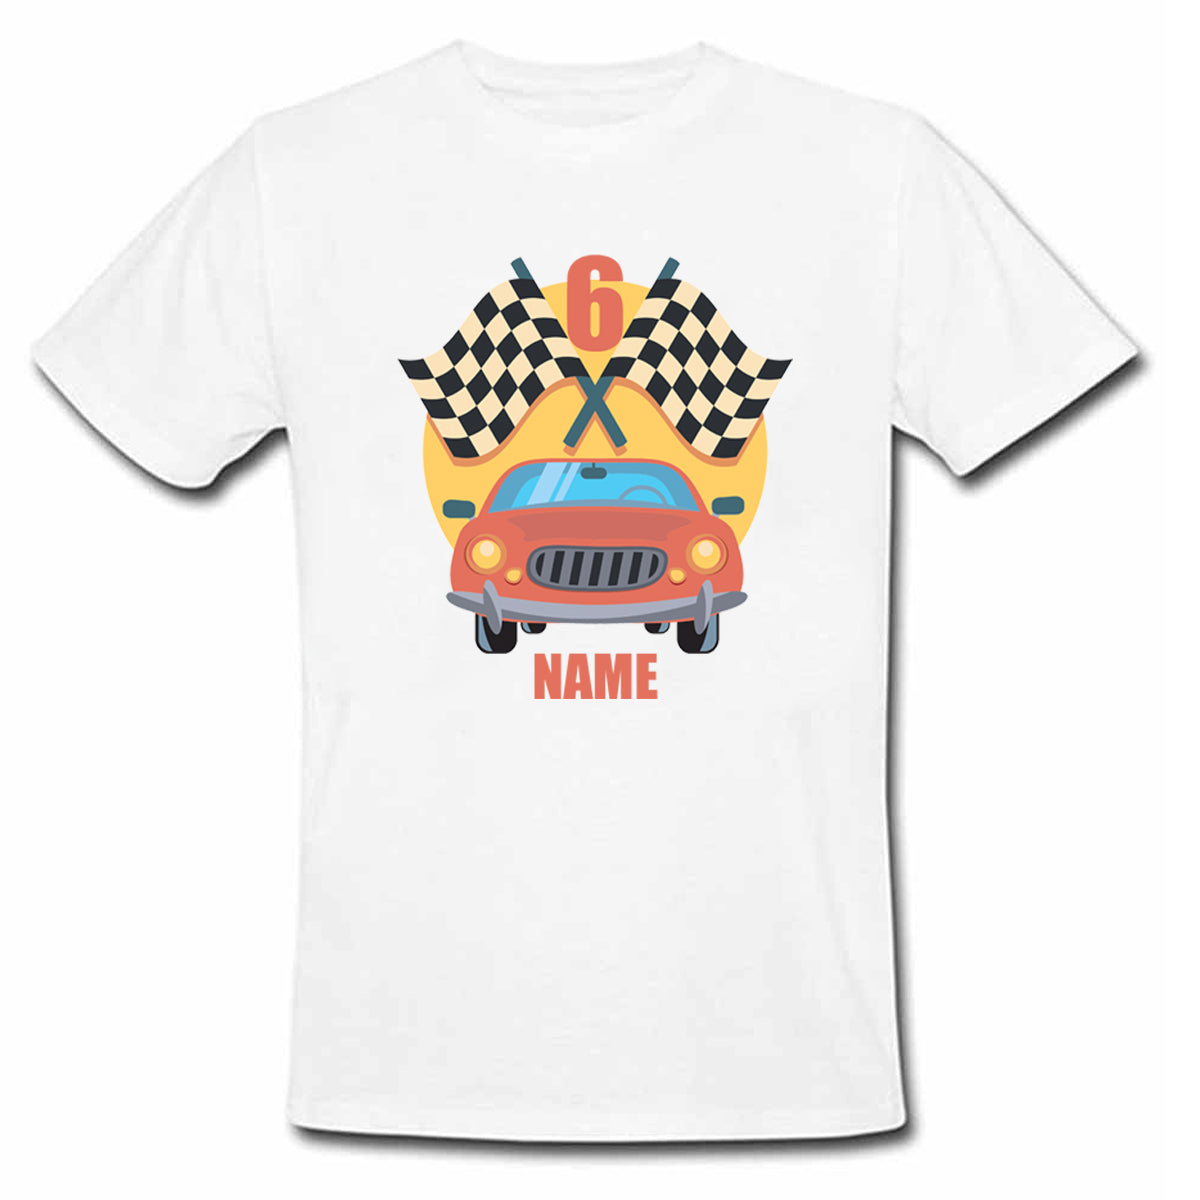 Sprinklecart Custom Name and Age Printed 6th Birthday Racing Car Poly-Cotton T Shirt Wear for Kids (White)